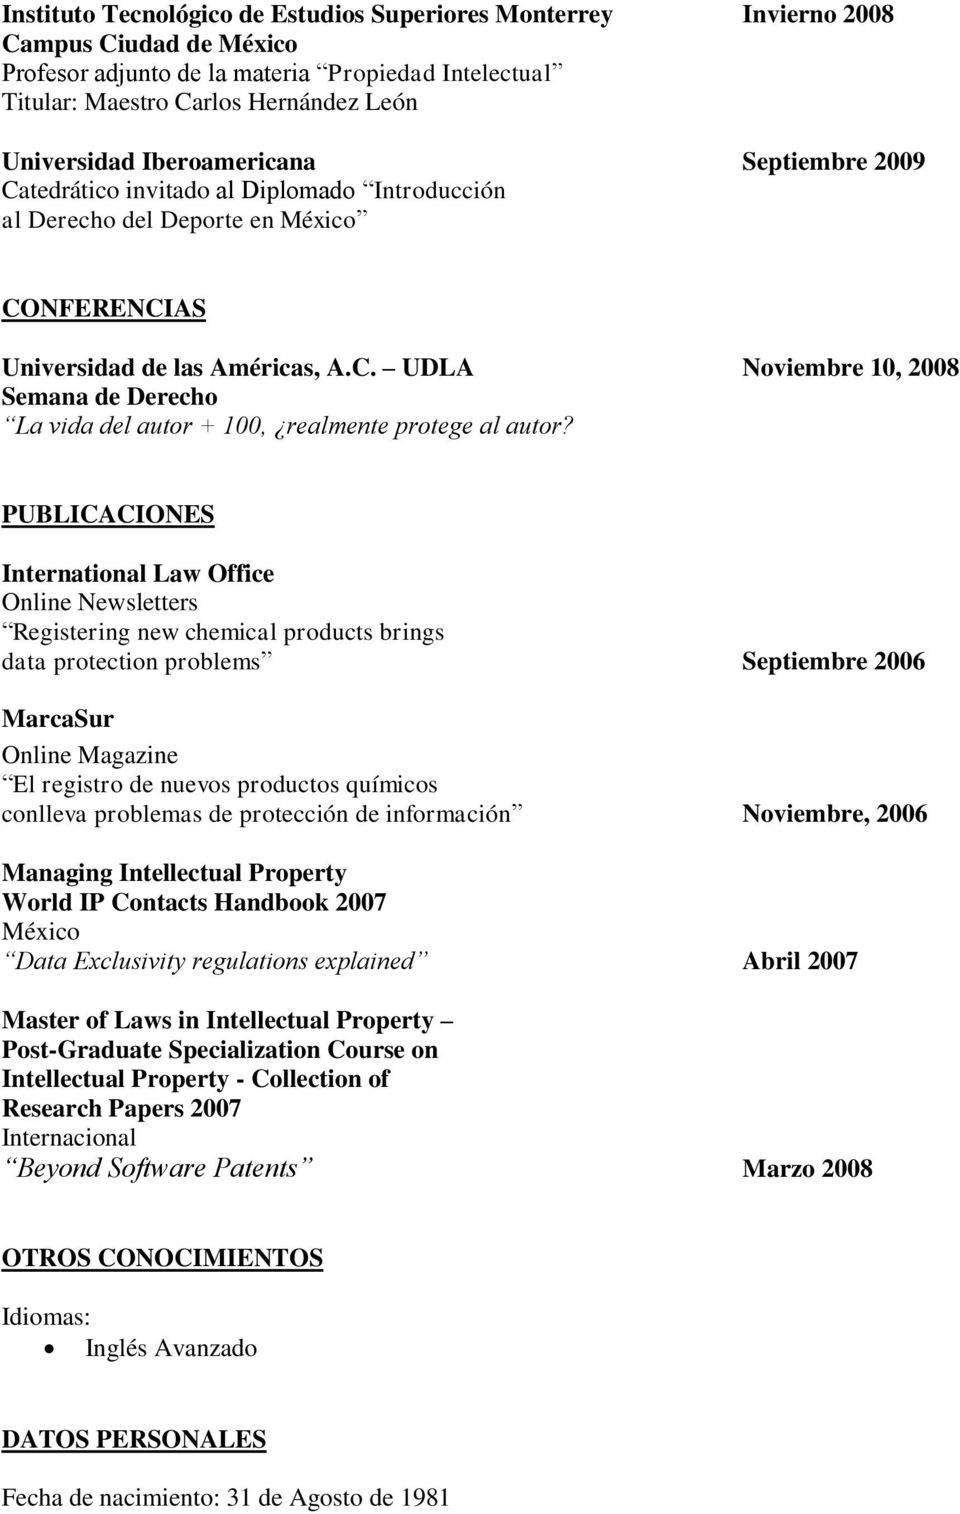 PUBLICACIONES International Law Office Online Newsletters Registering new chemical products brings data protection problems Septiembre 2006 MarcaSur Online Magazine El registro de nuevos productos